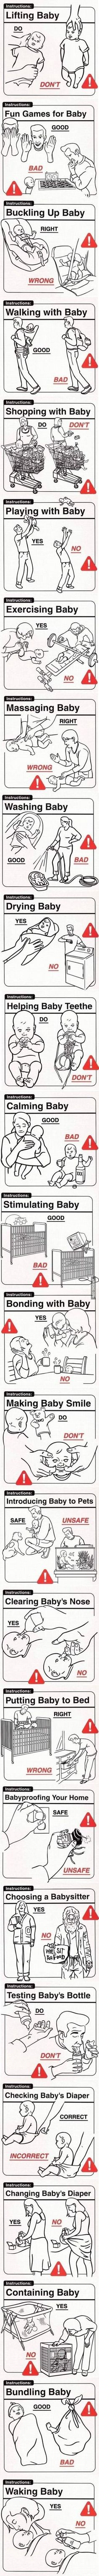 The Proper Care for Your Baby, this cracks me up. A little humor doesn't hurt.